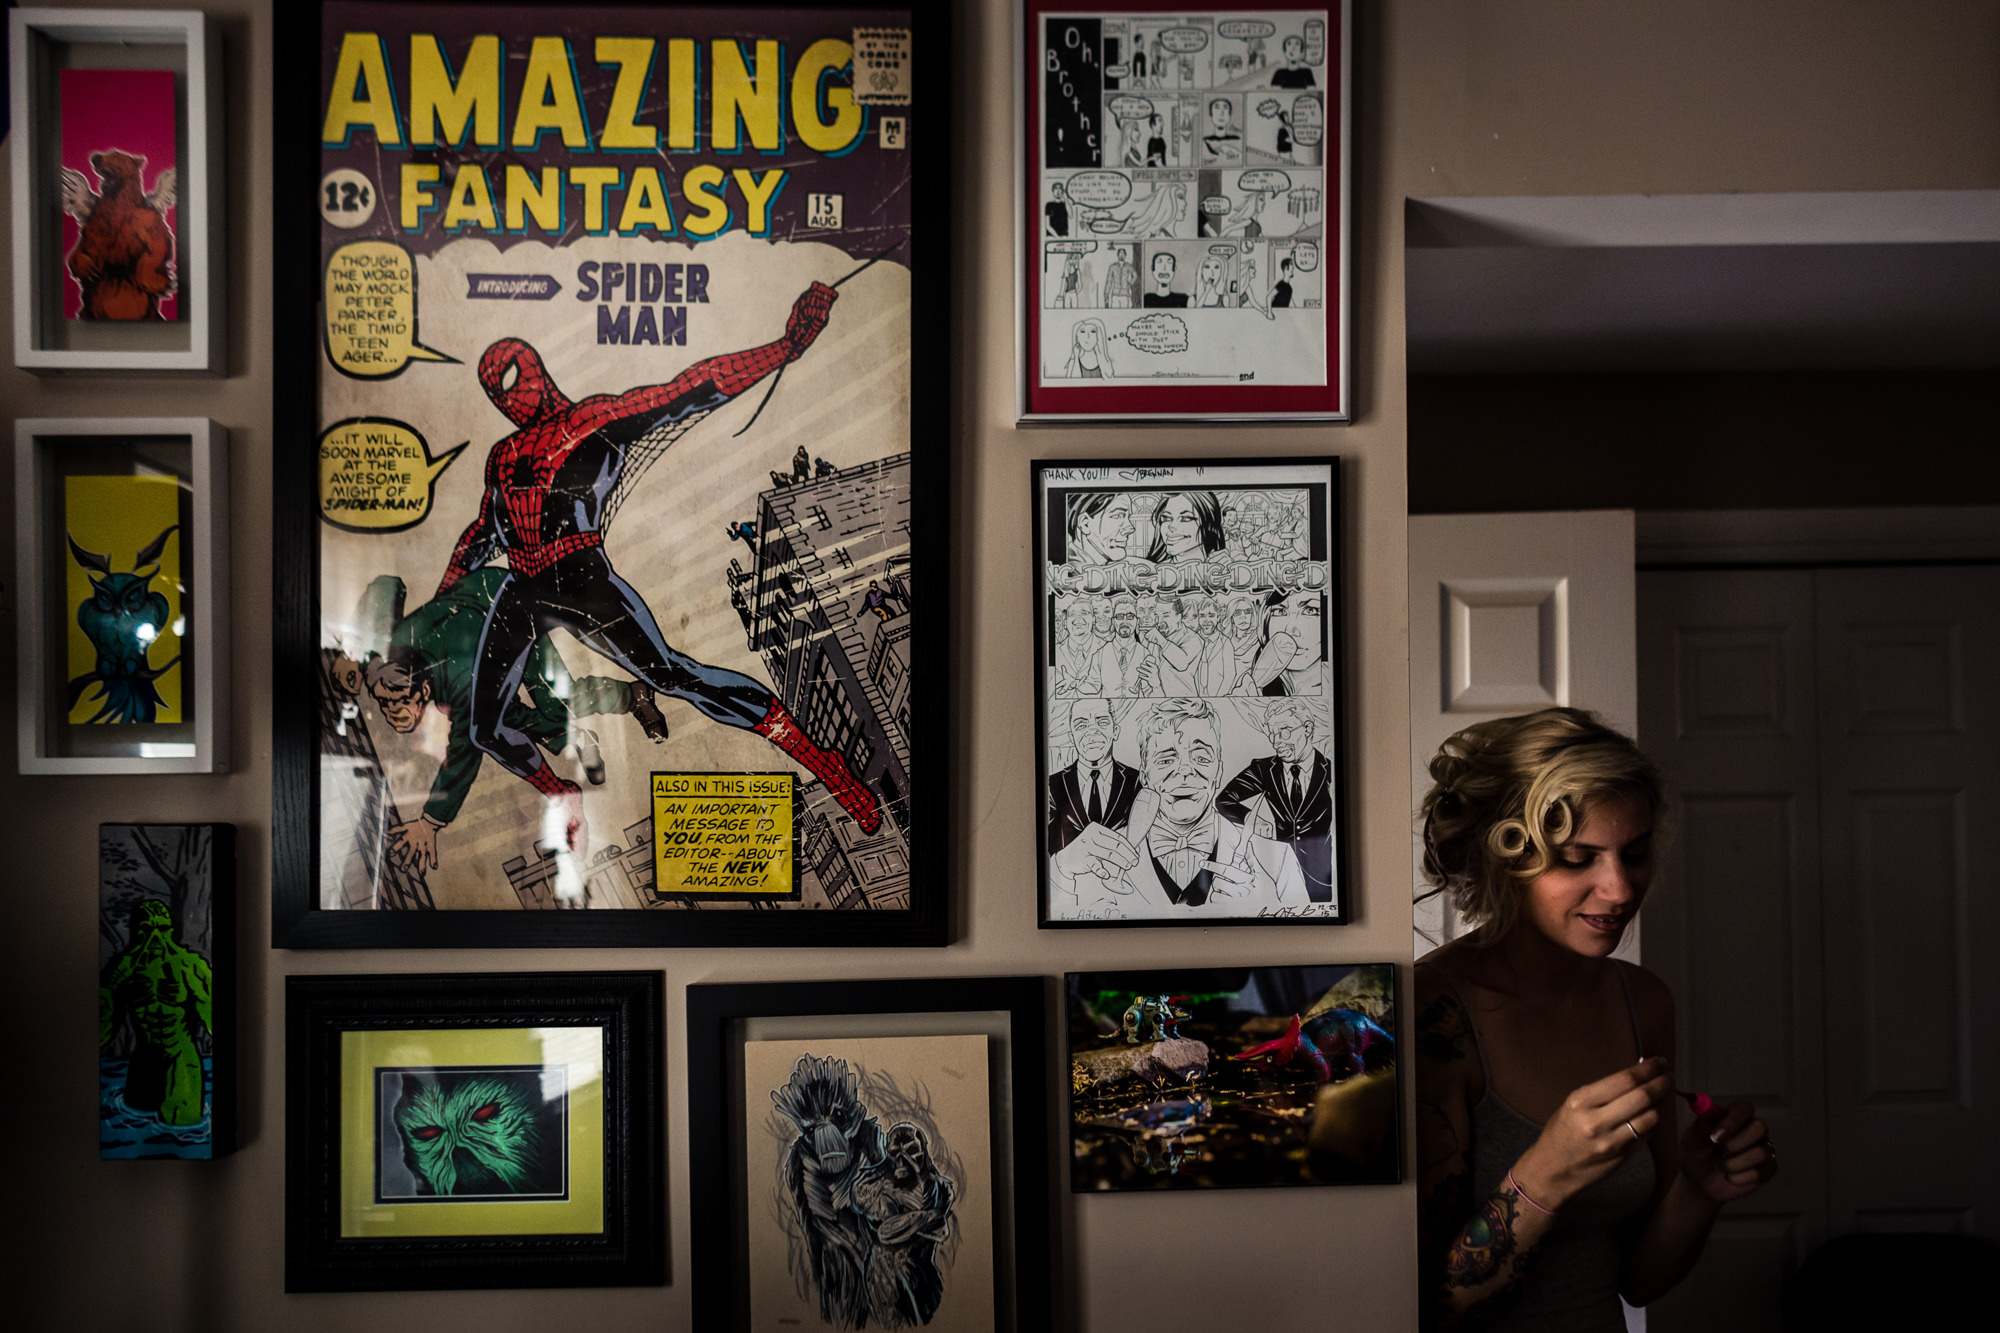 Bride leaning on wall with spiderman poster - photo by JAG Studios